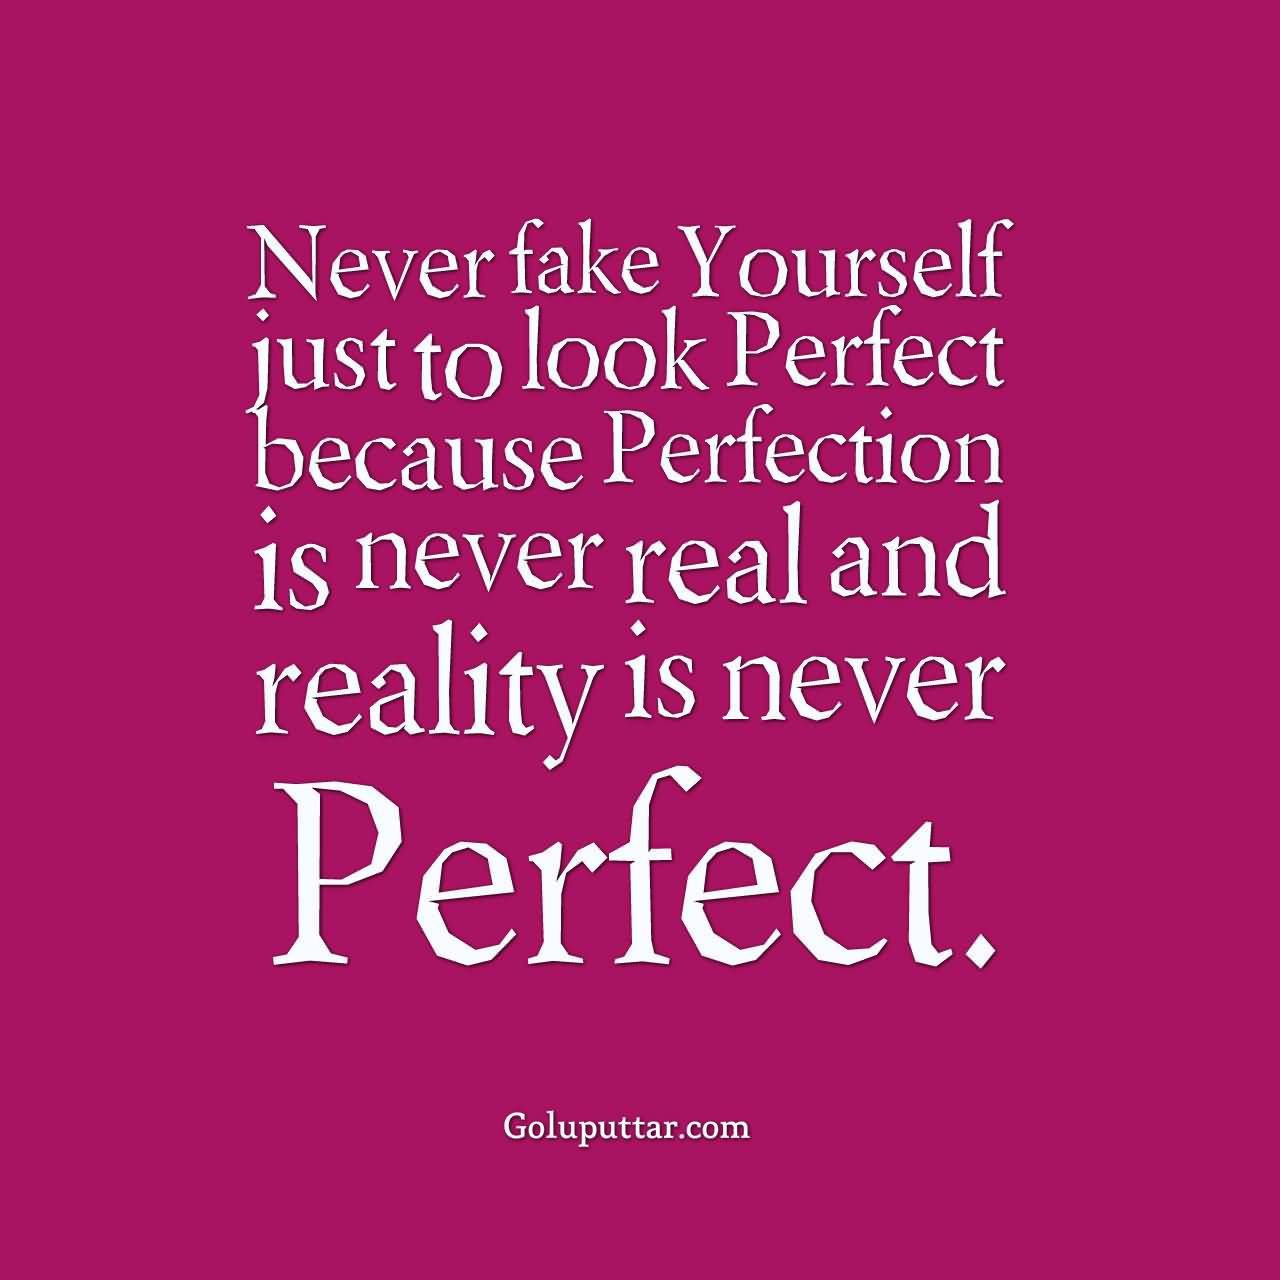 Never fake yourself just to look perfect because Perfection is never real and Reality is never Perfect